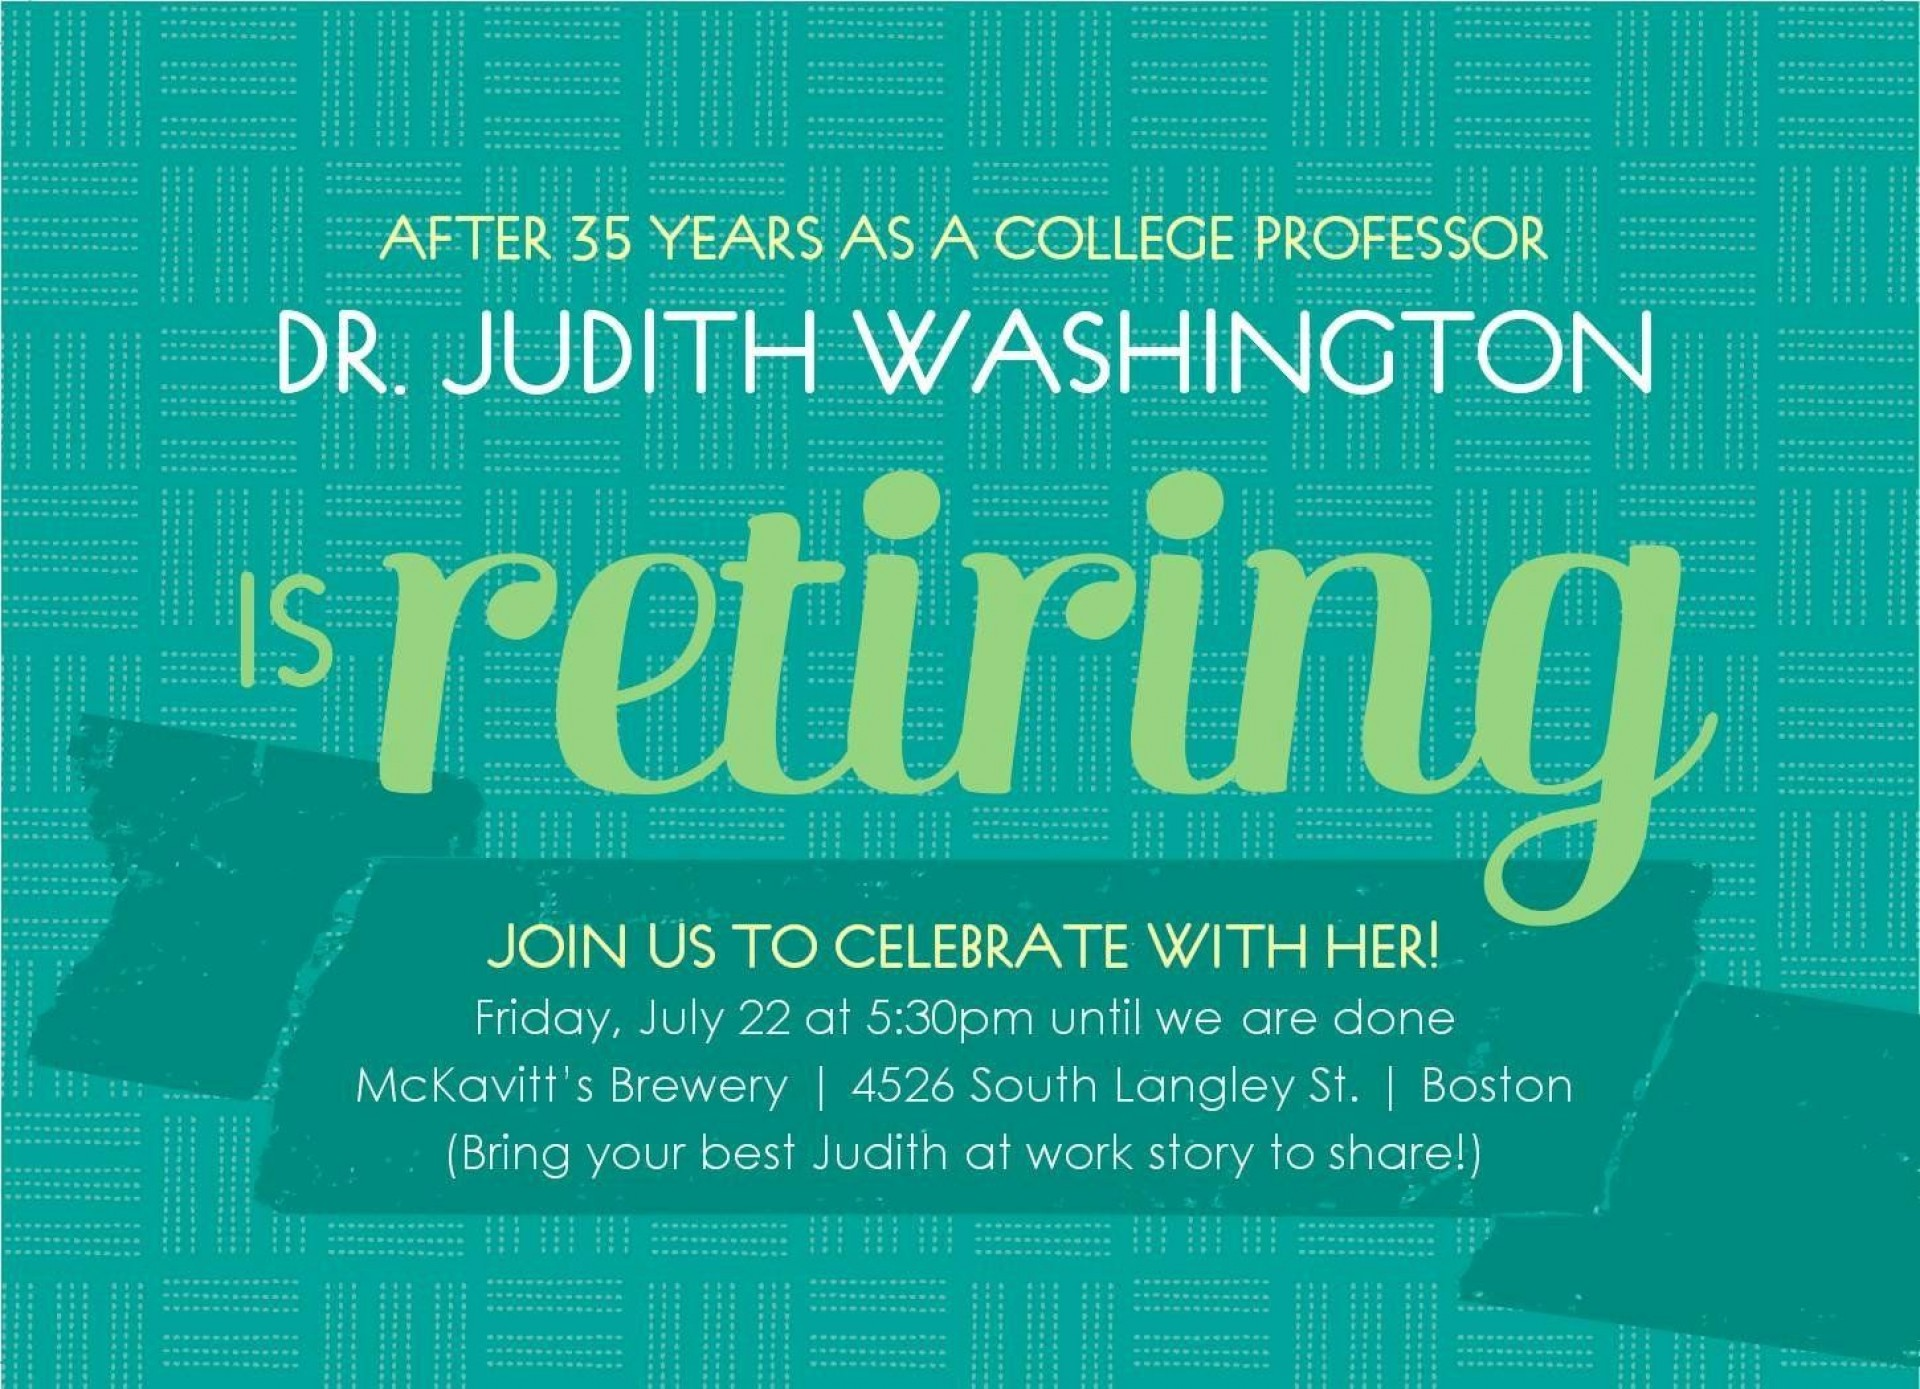 002 Stunning Retirement Farewell Party Invitation Template Free Highest Clarity 1920